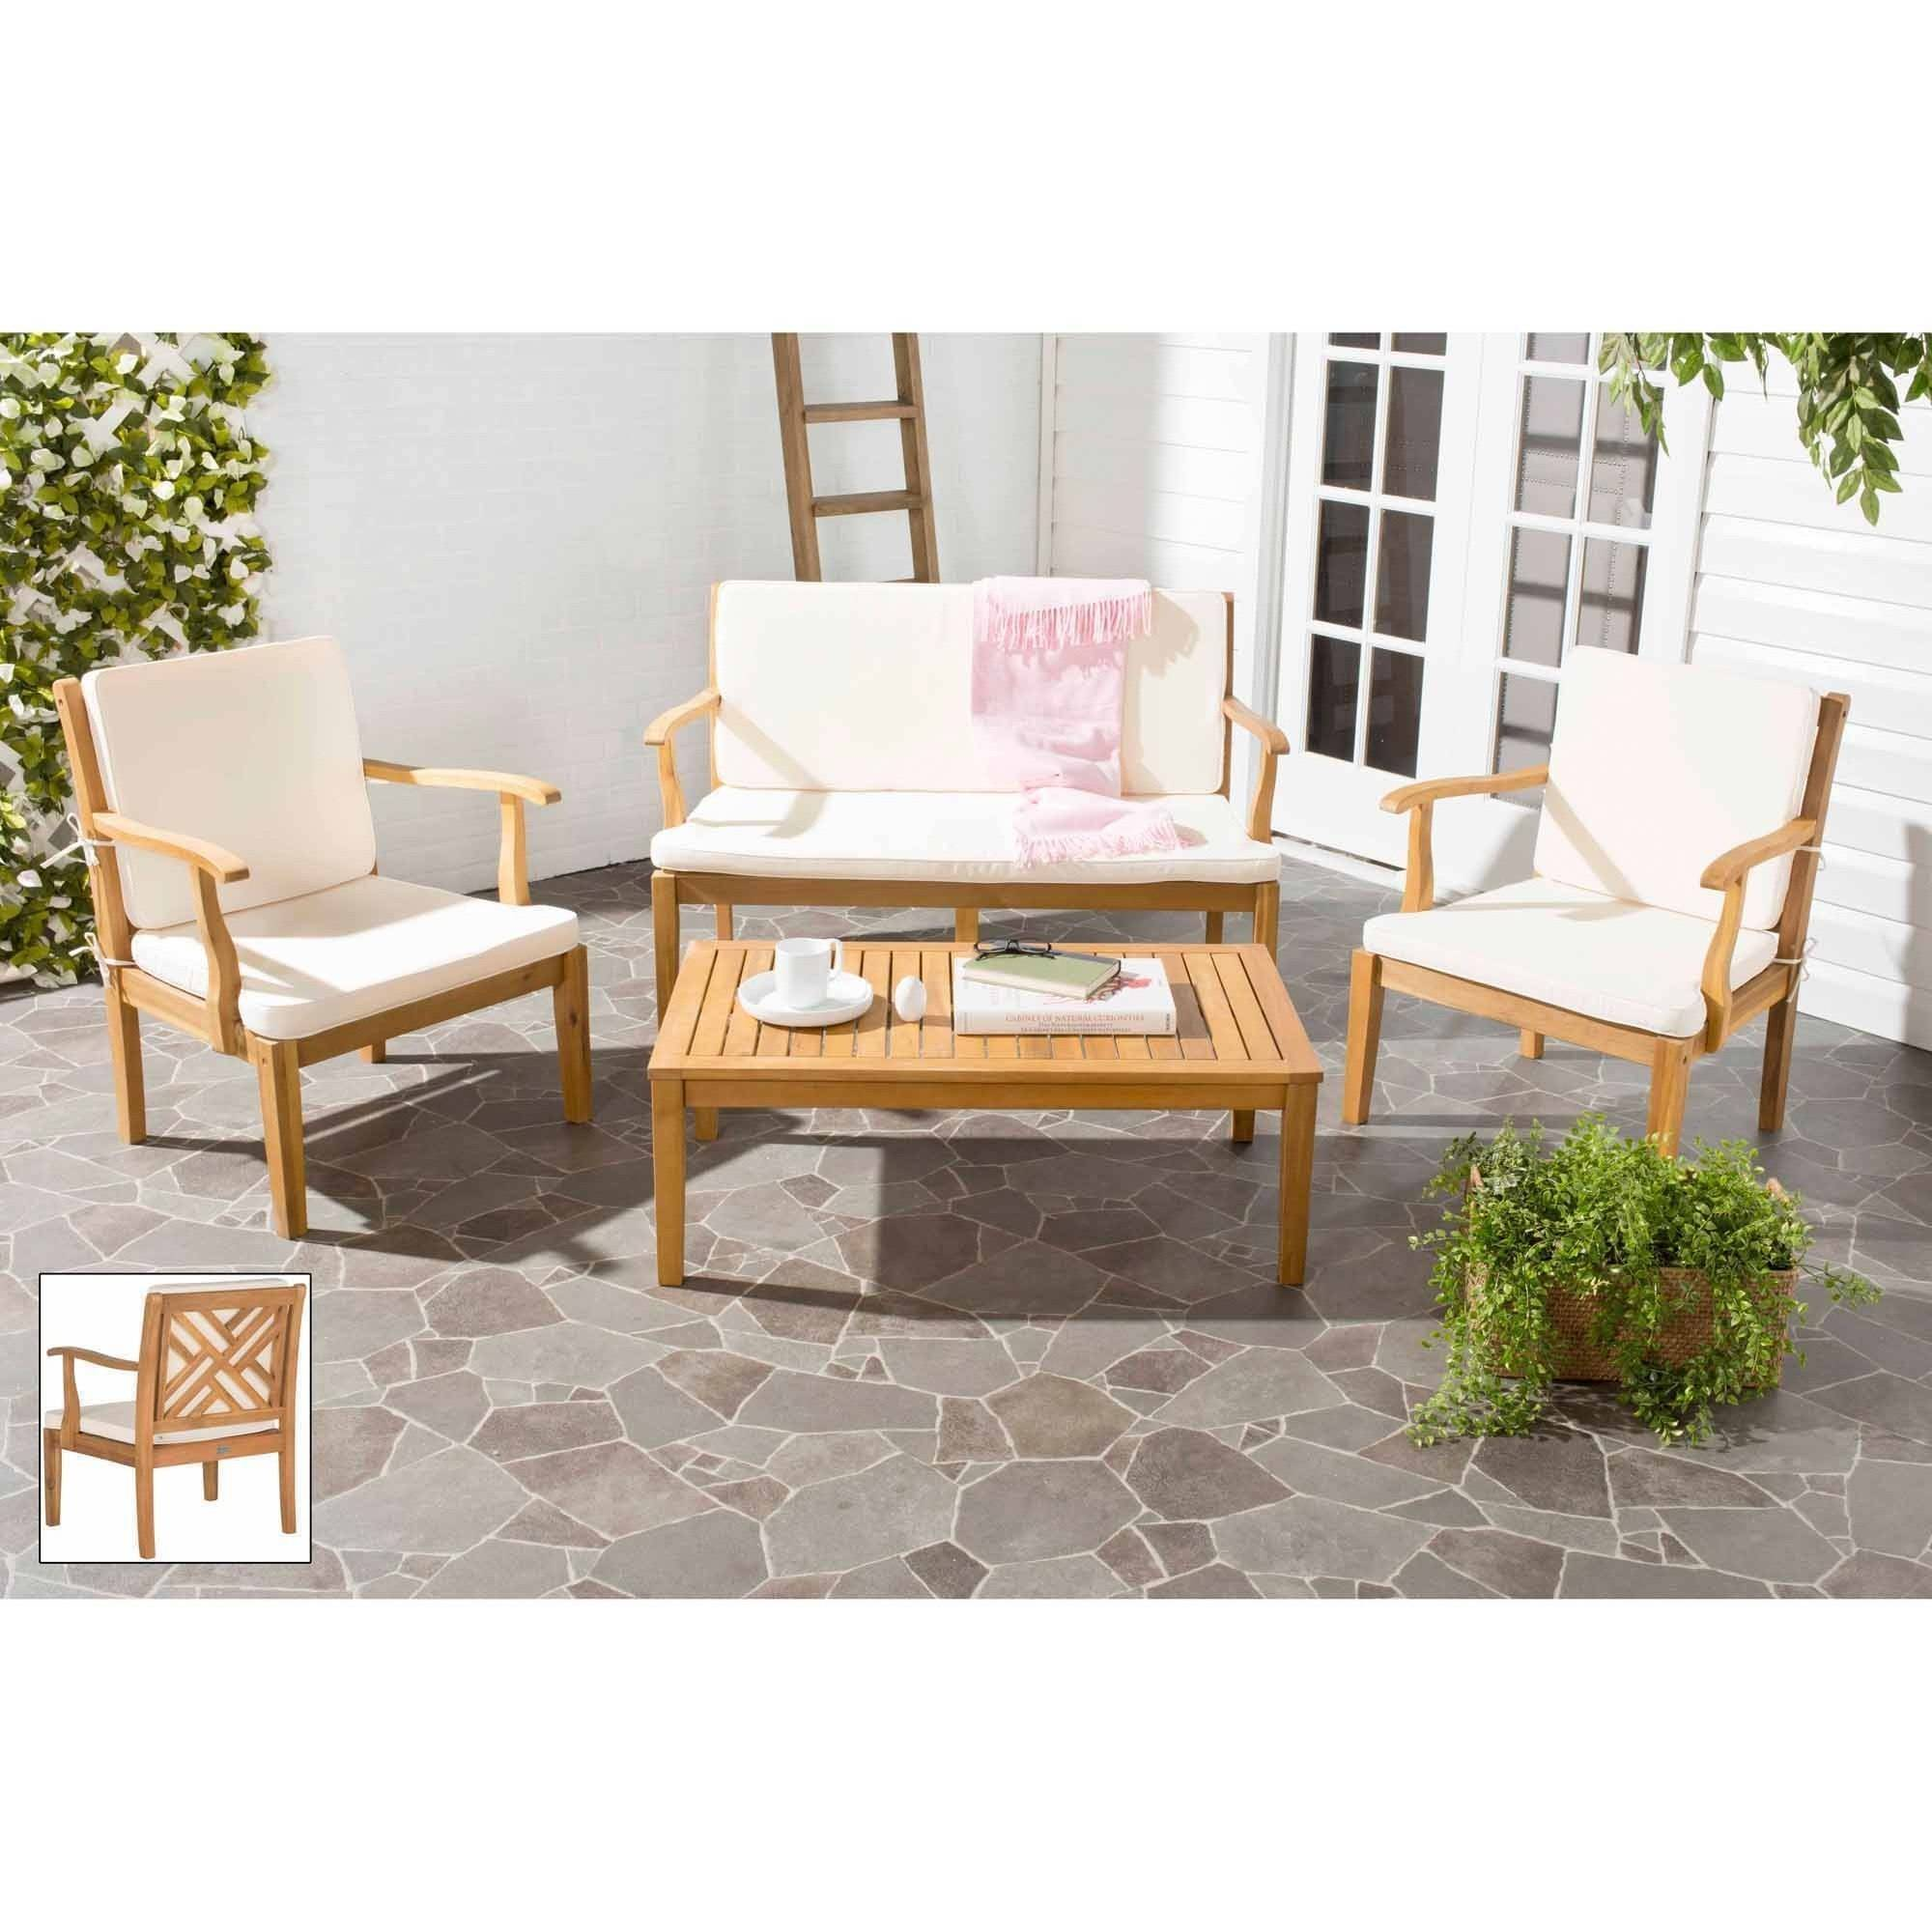 Safavieh Bradbury 4-Piece Outdoor Living Set, Multiple Colors